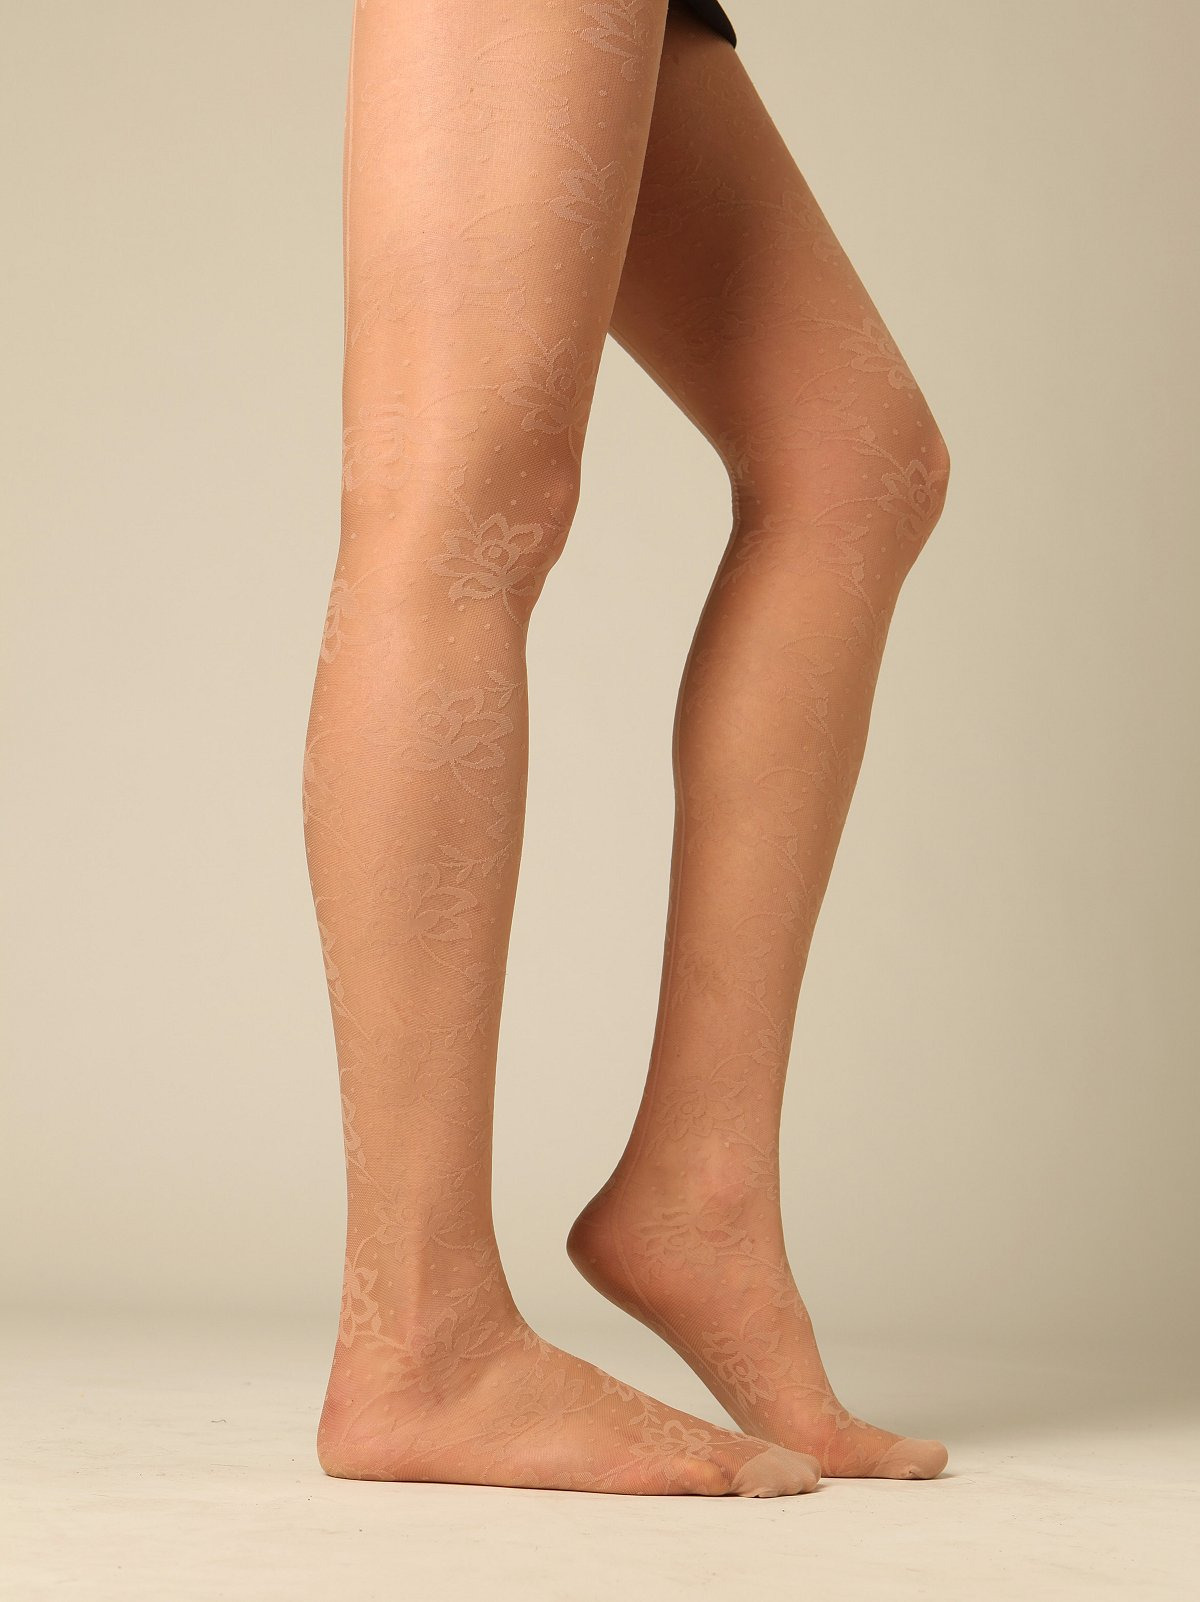 Nude Floral Back Seam Tights by Emilio Cavallini